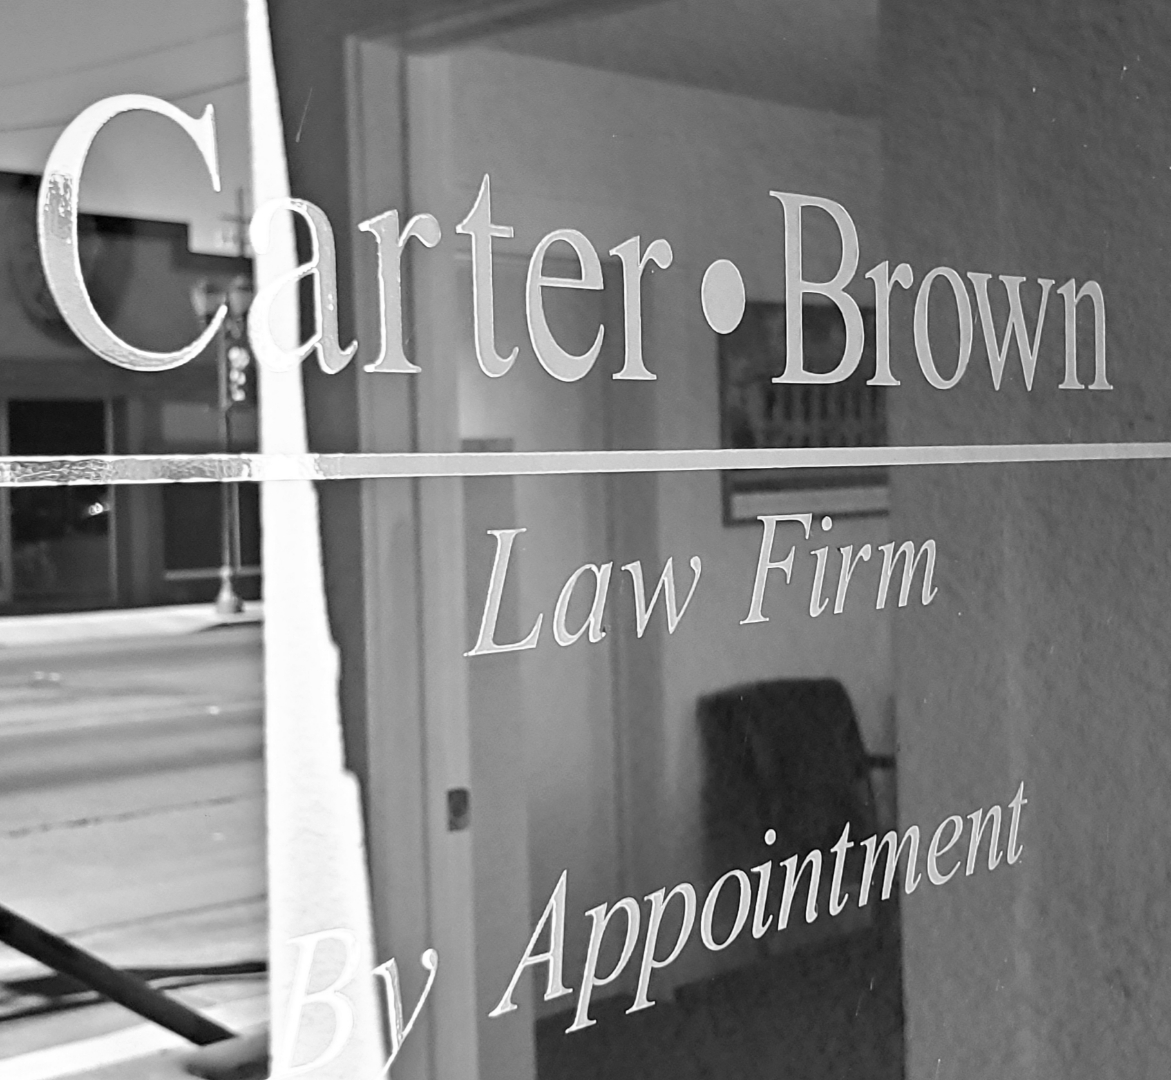 Picture of Carter Brown office